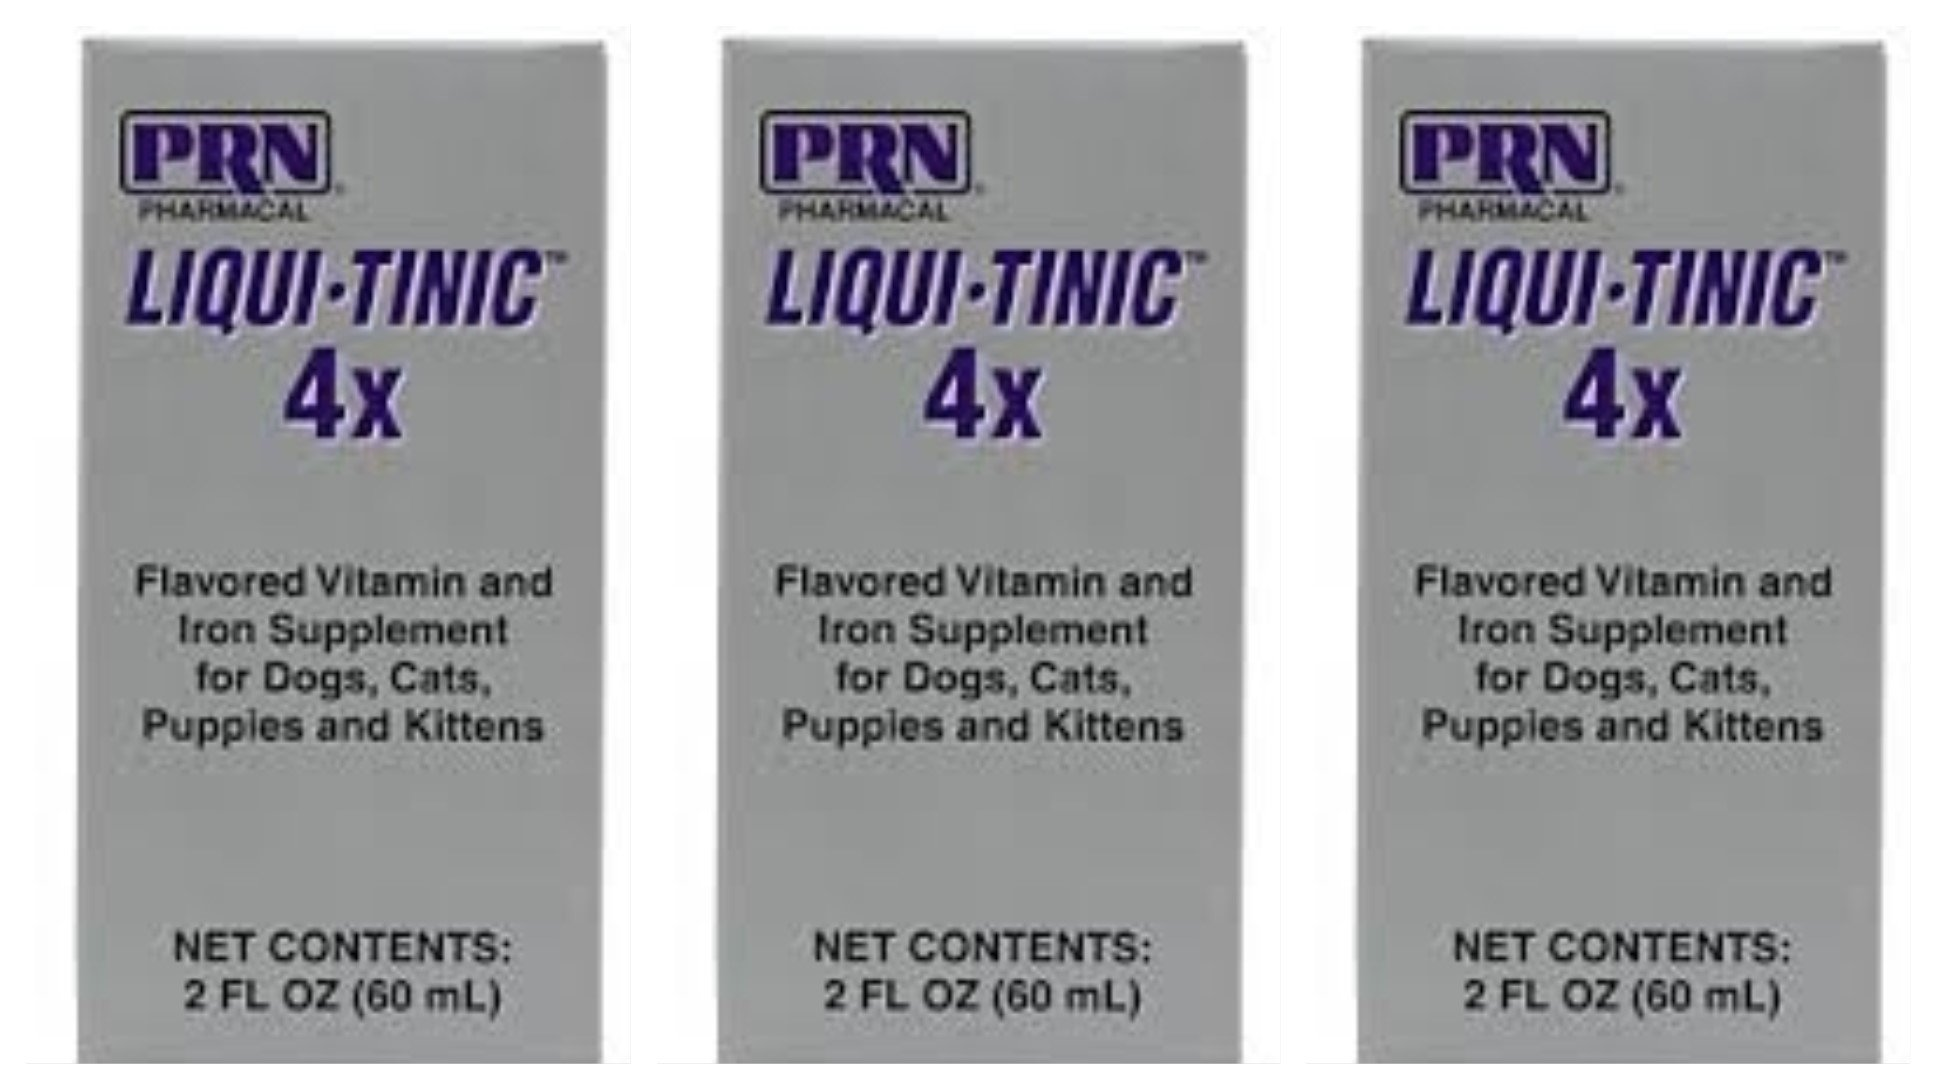 LIQUI-TINIC 4X Prn Pharmacal Flavored Vitamin and Iron Supplement for Dogs, Cats, Puppies and Kittens,- 2 FL OZ (60 mL) Each - 3 PACK